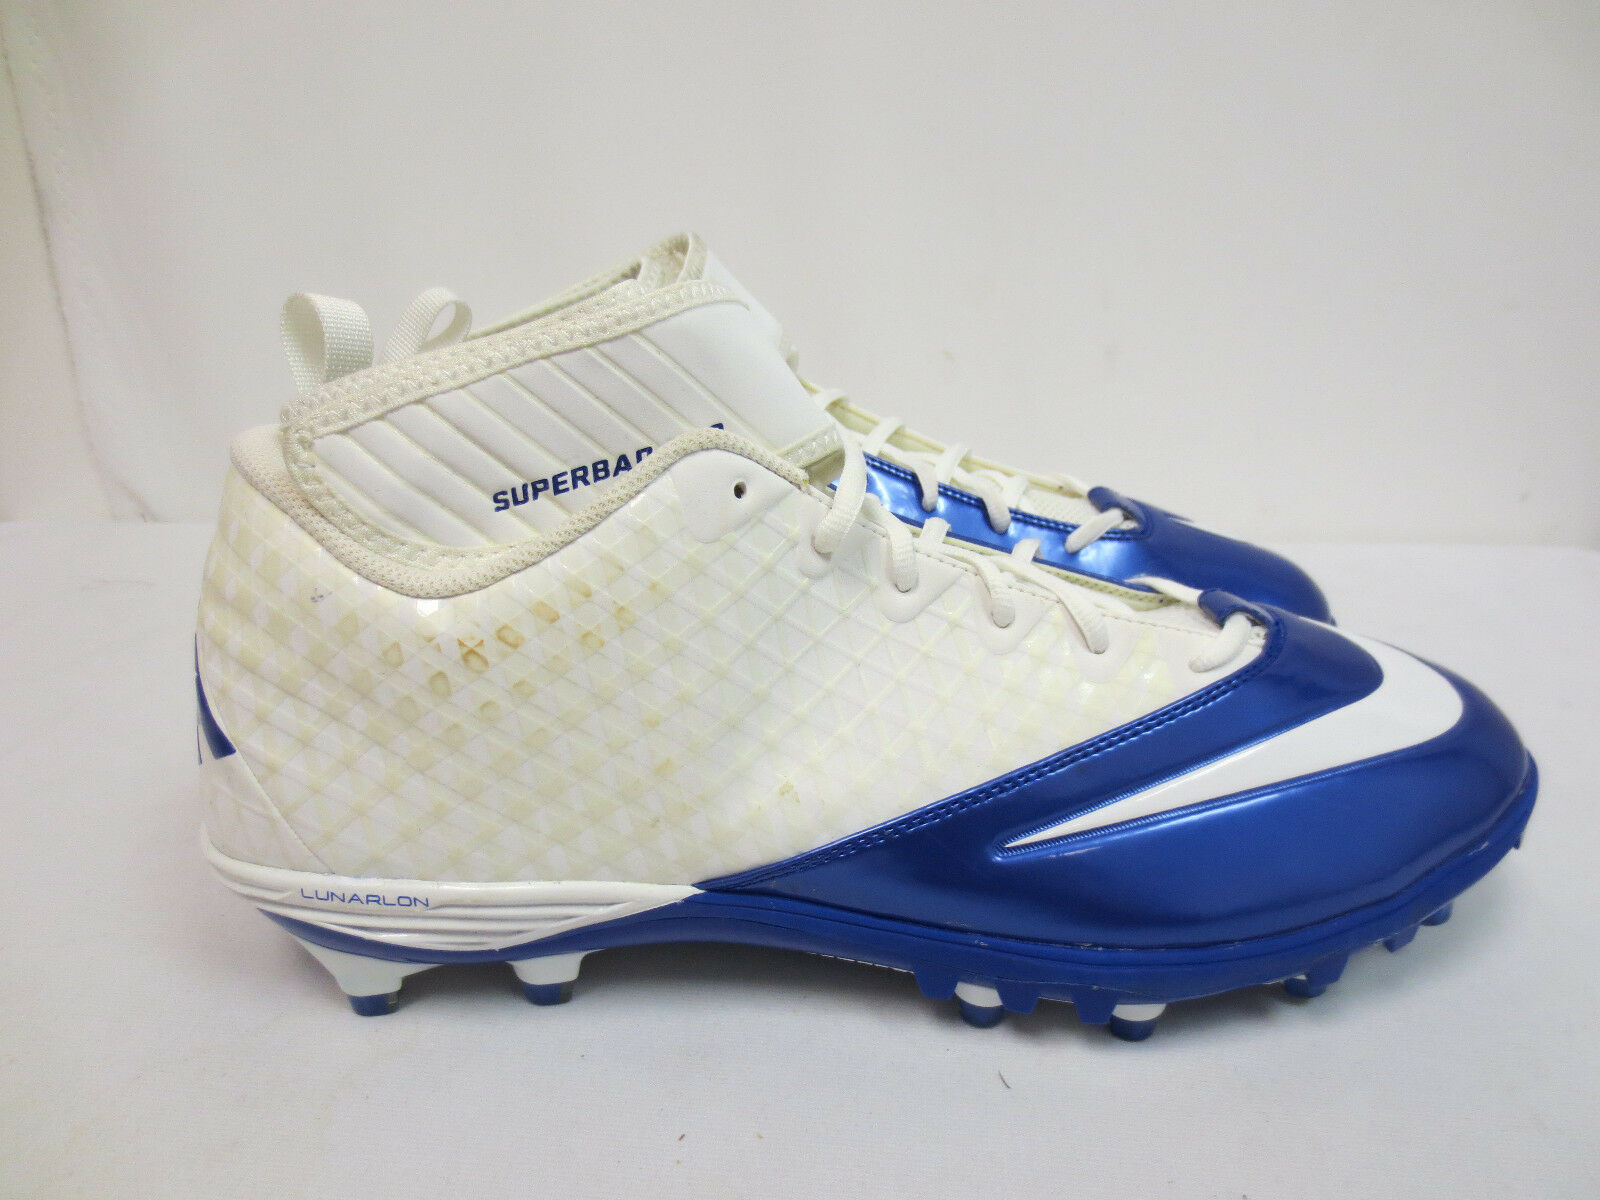 NIKE FOOTBALL CLEATS SIZE 16 LUNARLON SUPERBAD PRO GAME ISSUED MENS 534994 109